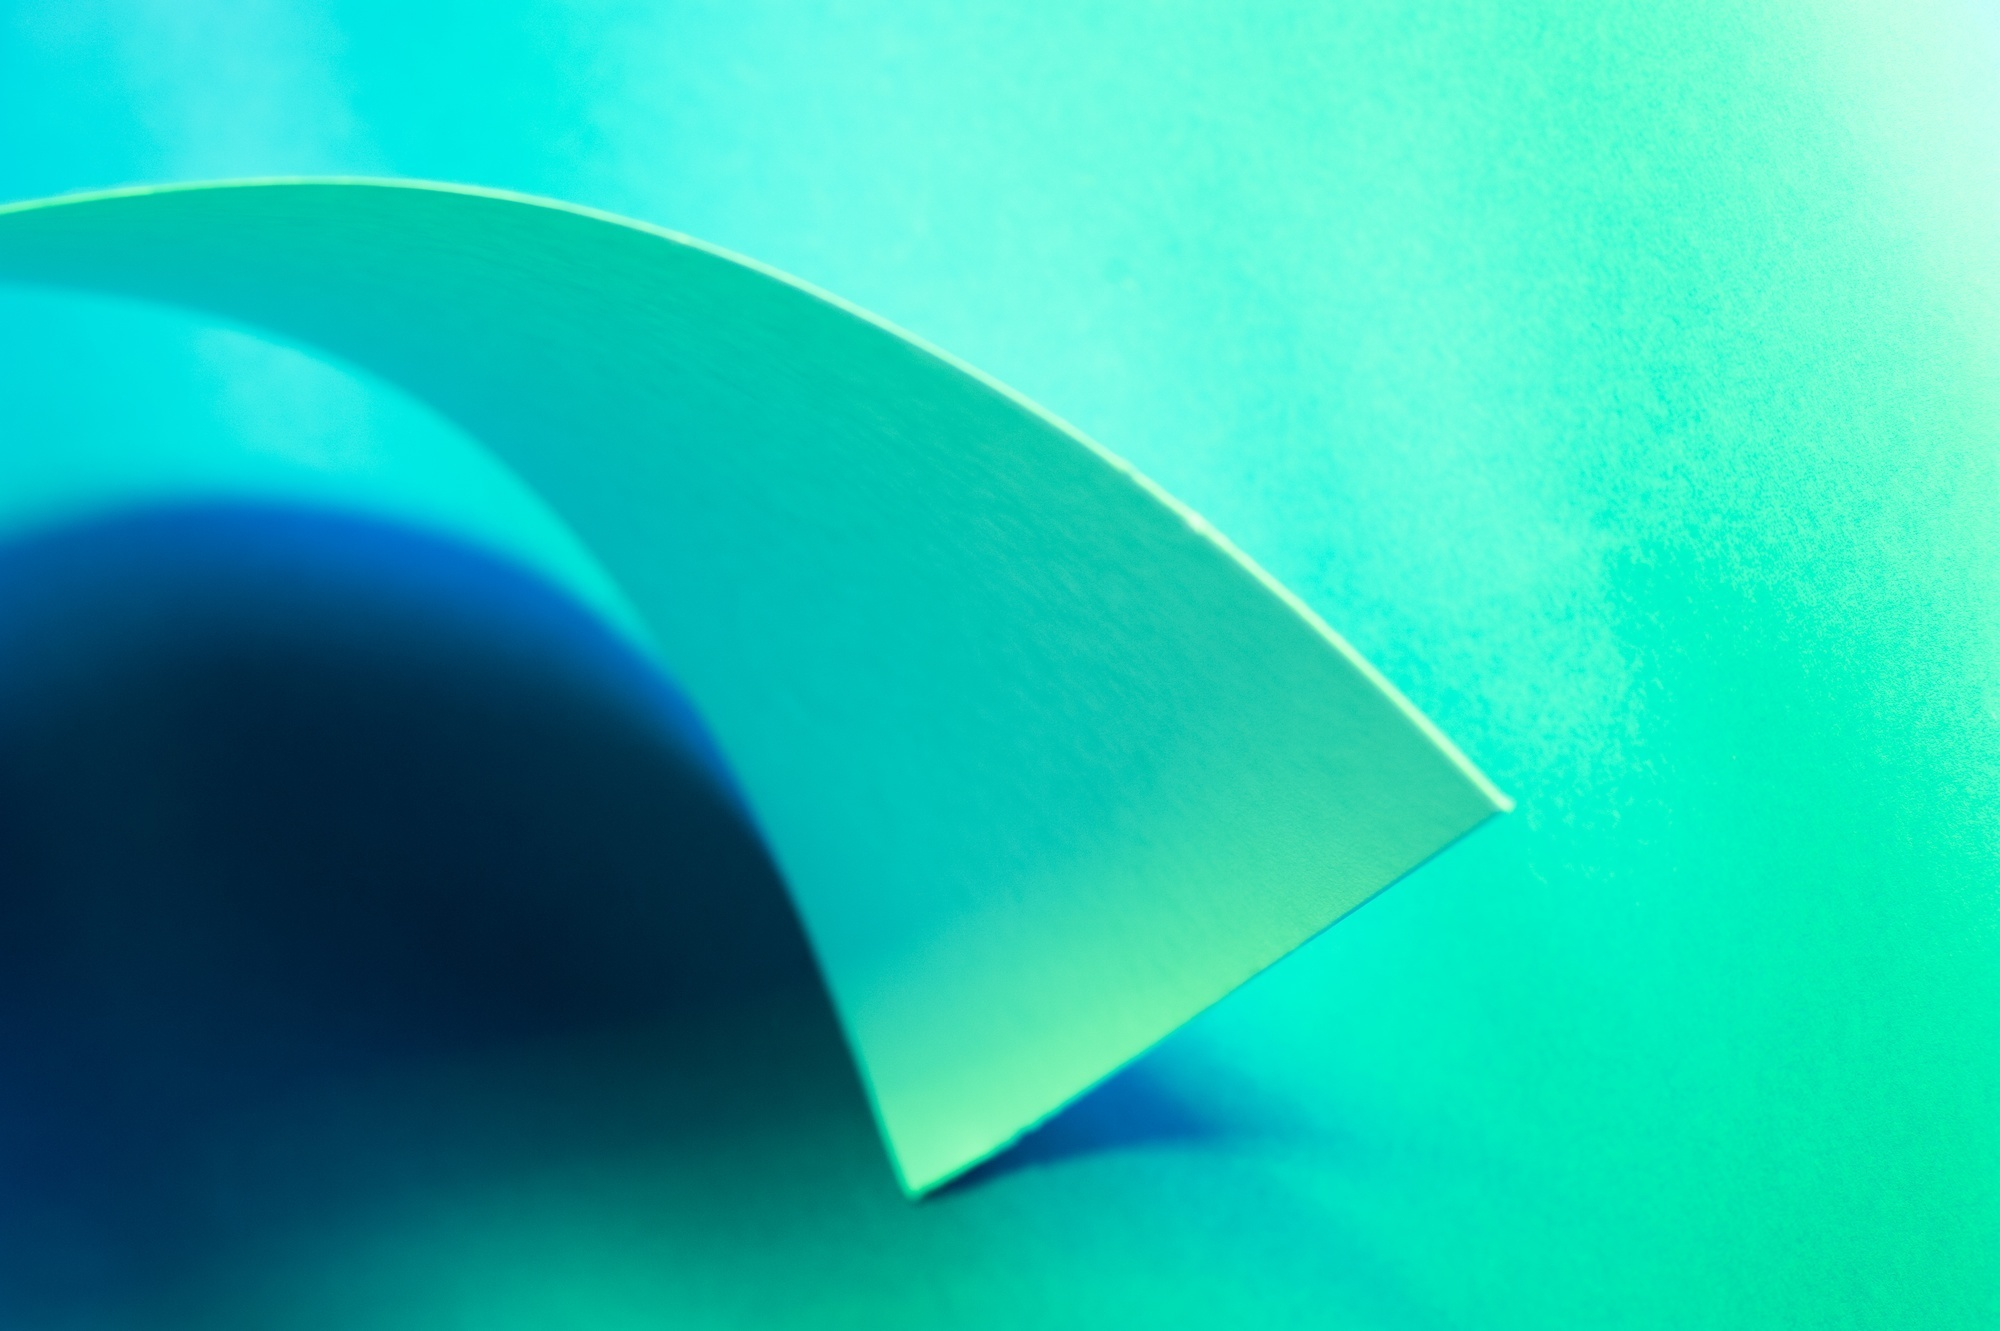 Green and blue study paper